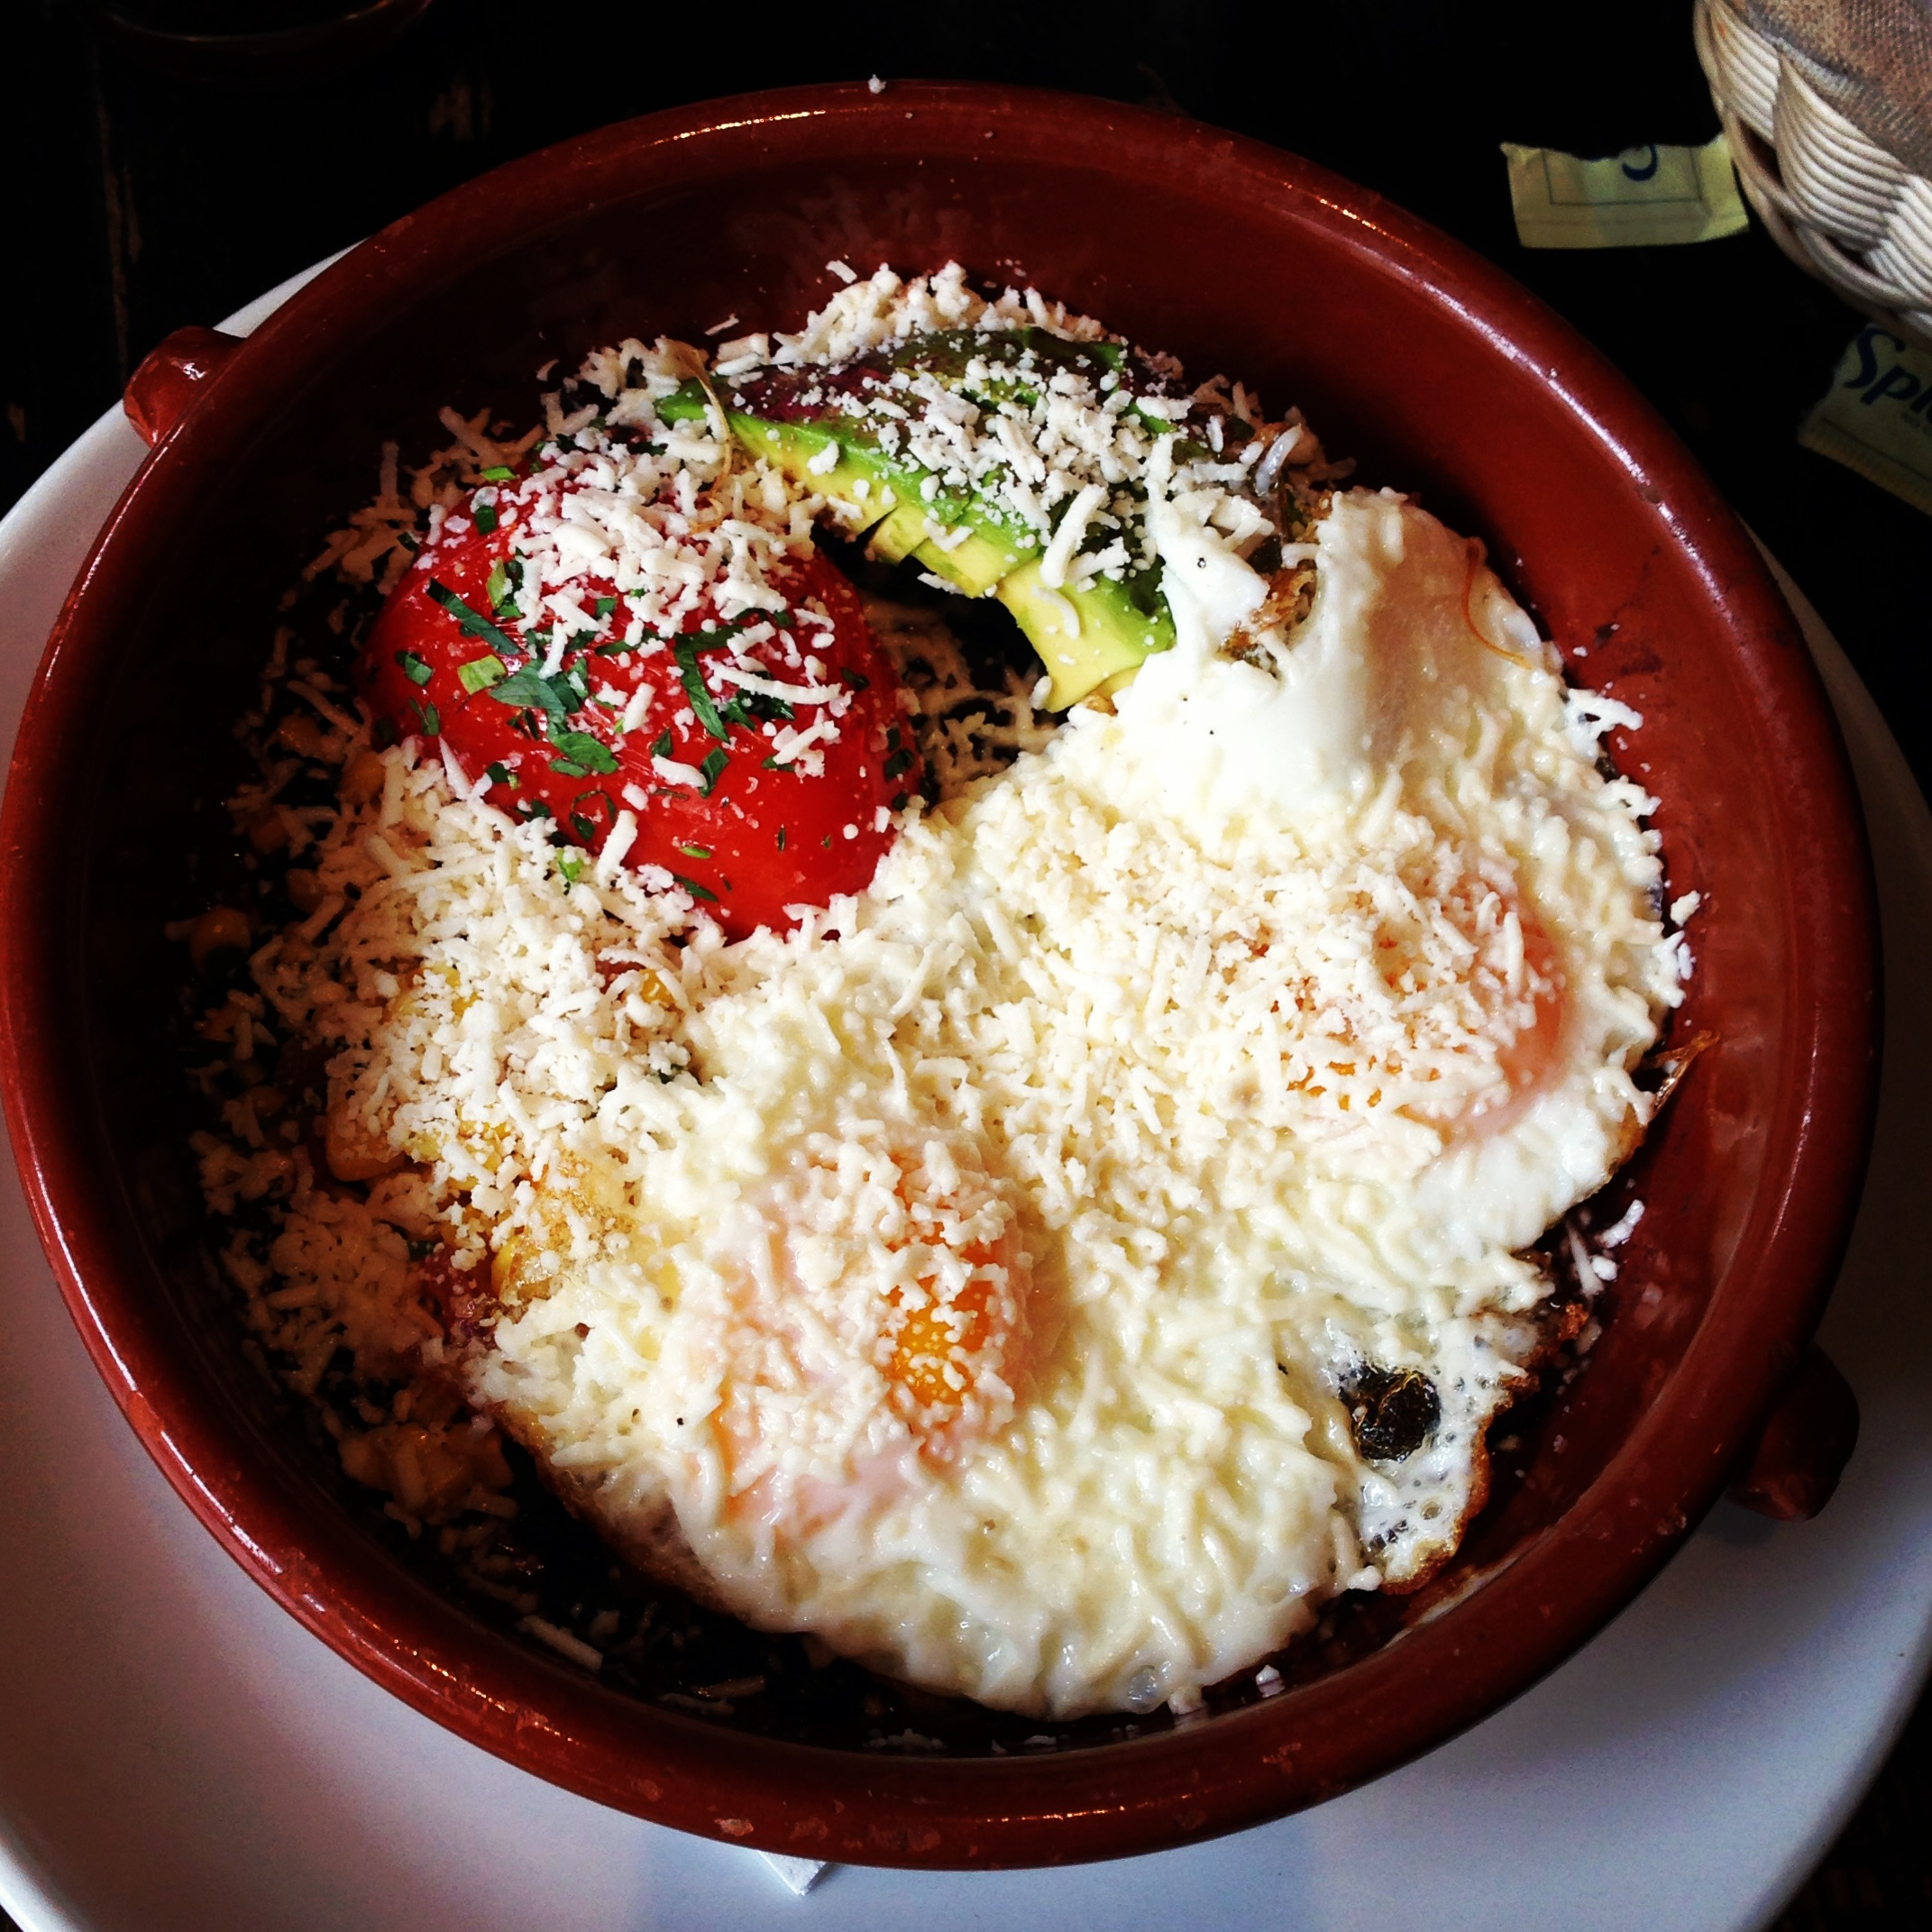 Huevos Rancheros – Sunny Side Up Eggs, Black Beans, Diced Avocado ...